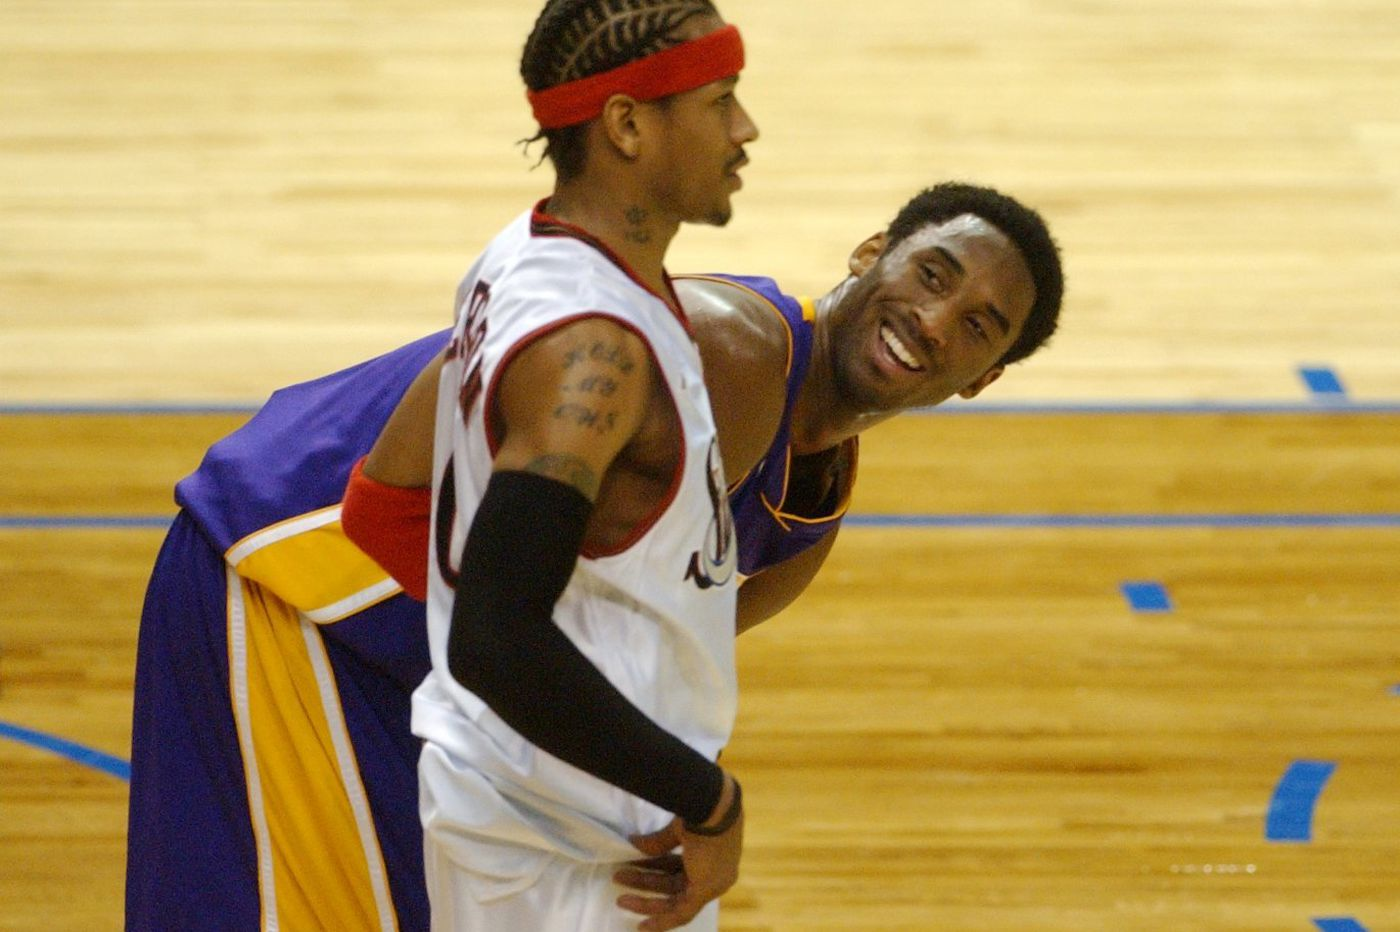 Sixers great Allen Iverson 'devastated and heartbroken' following Kobe Bryant's death